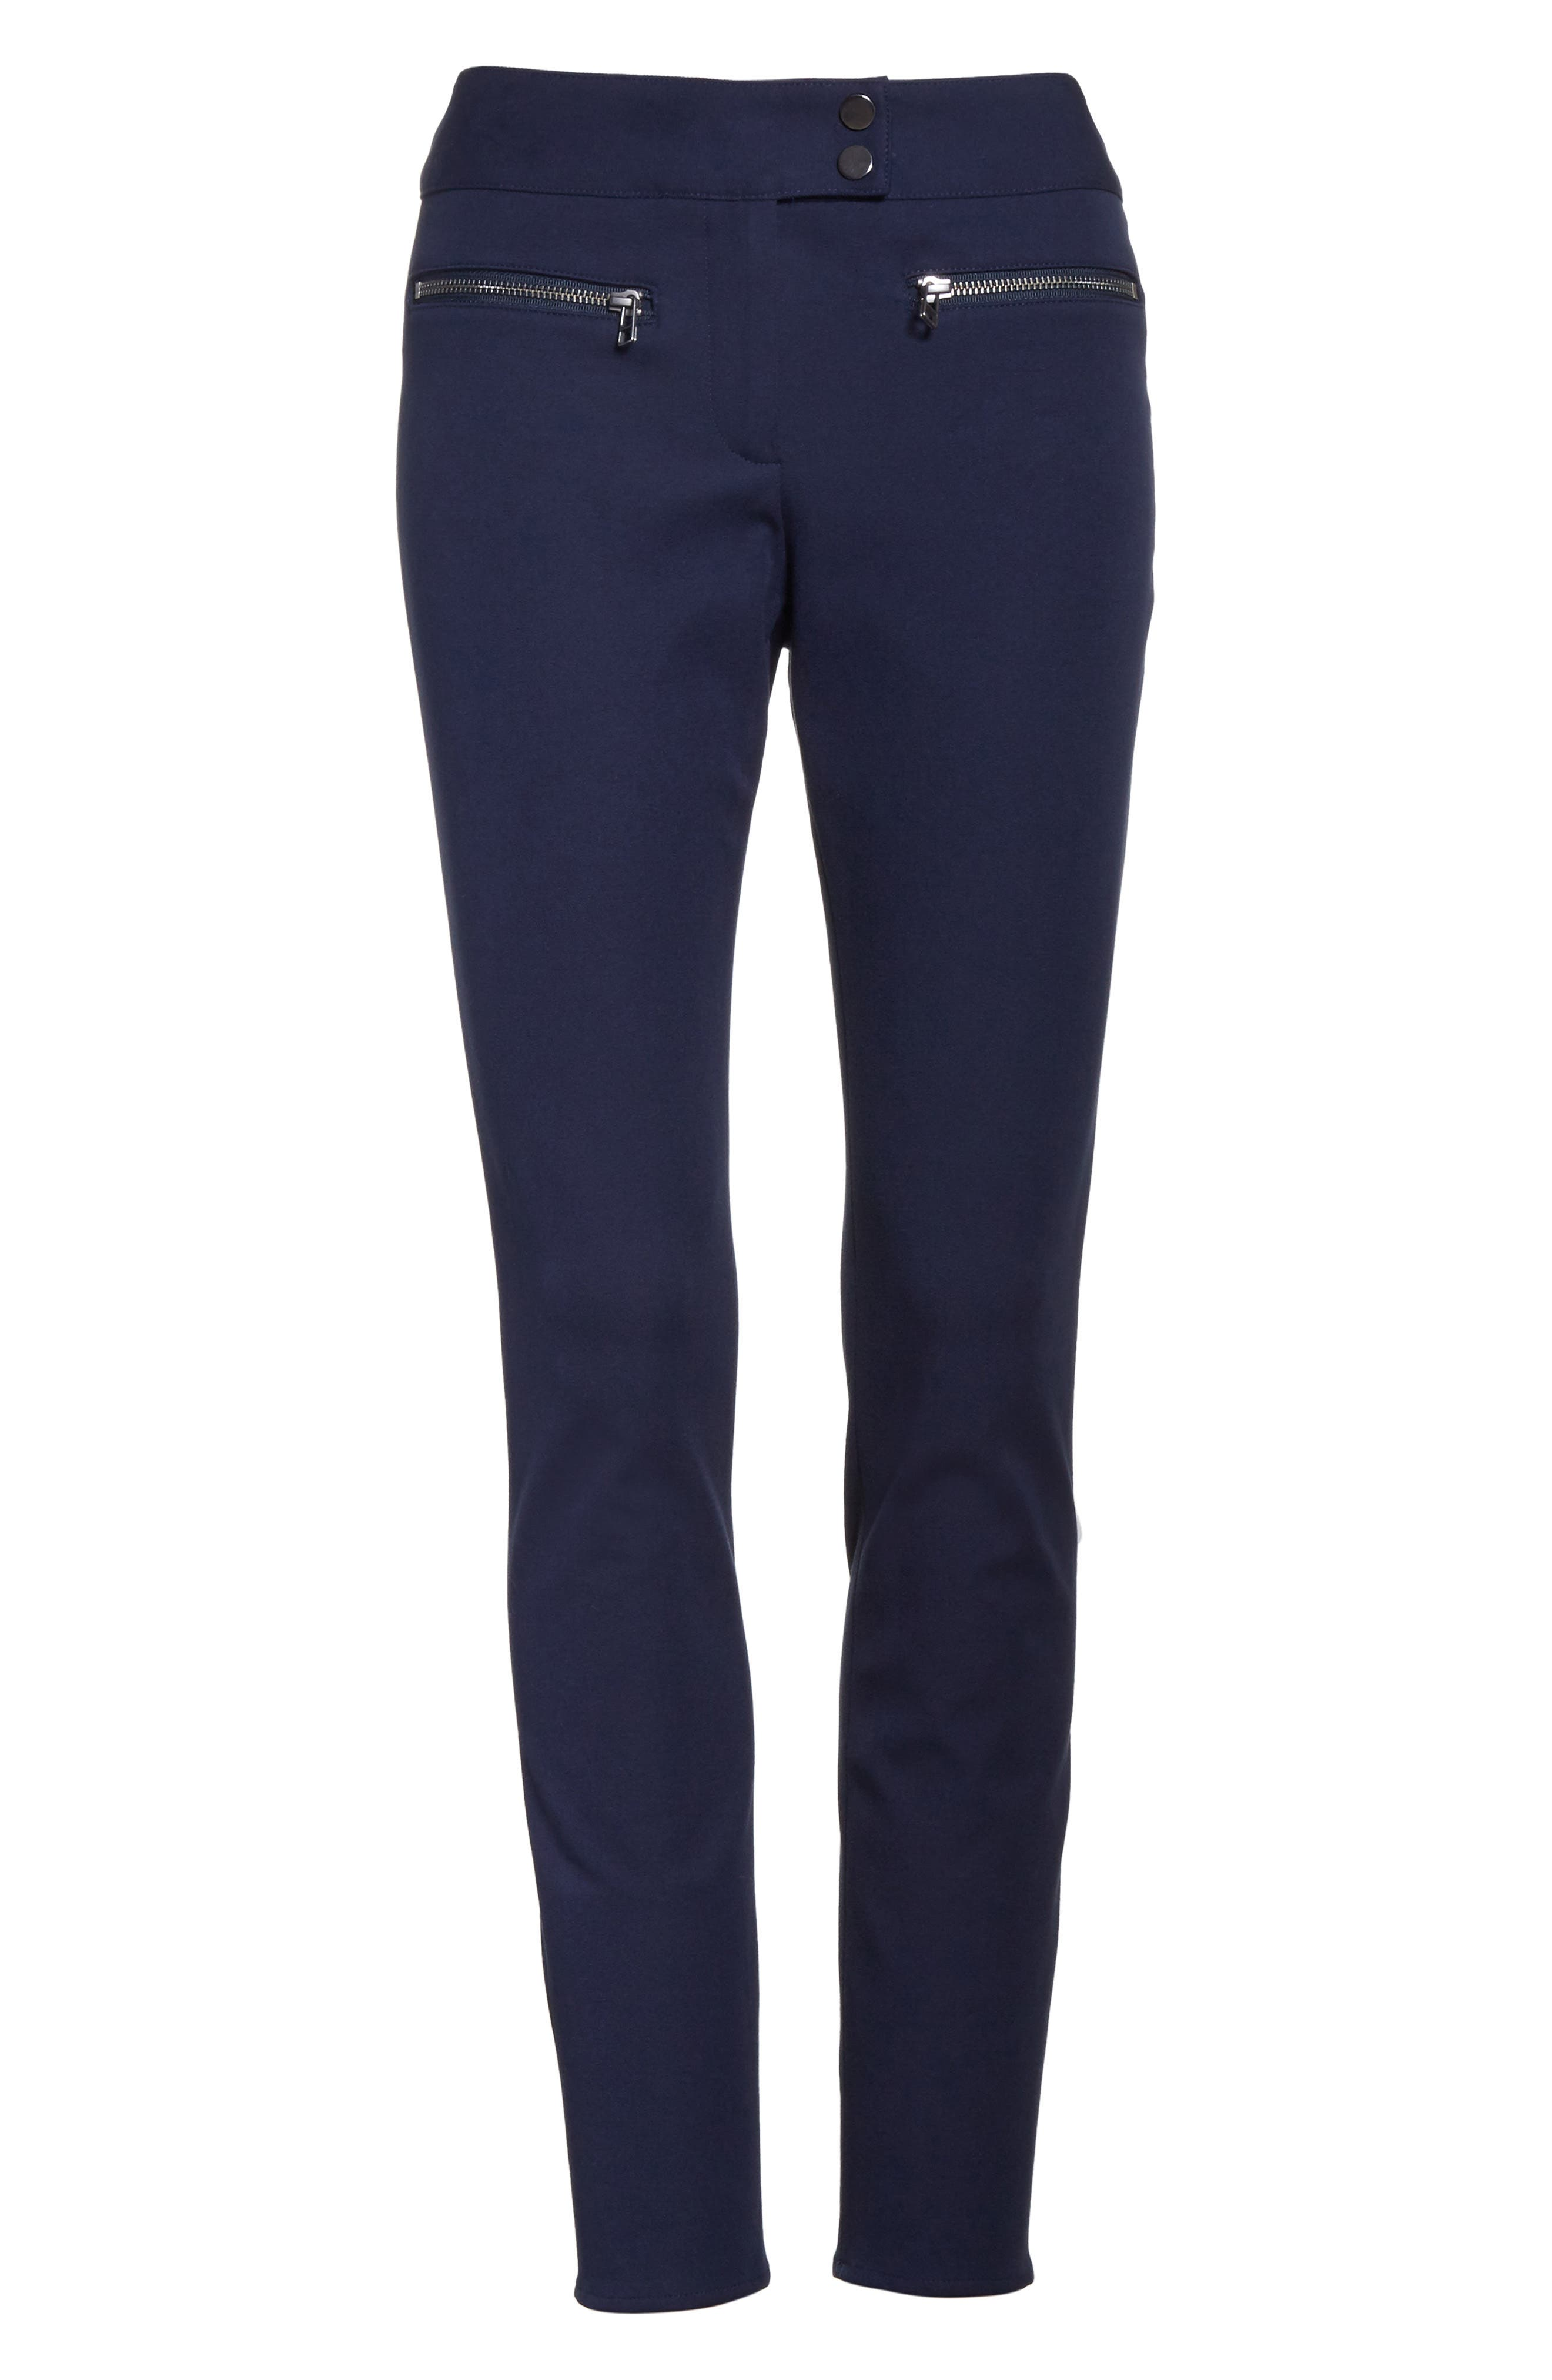 Ankle Skinny Pants,                             Alternate thumbnail 6, color,                             Navy